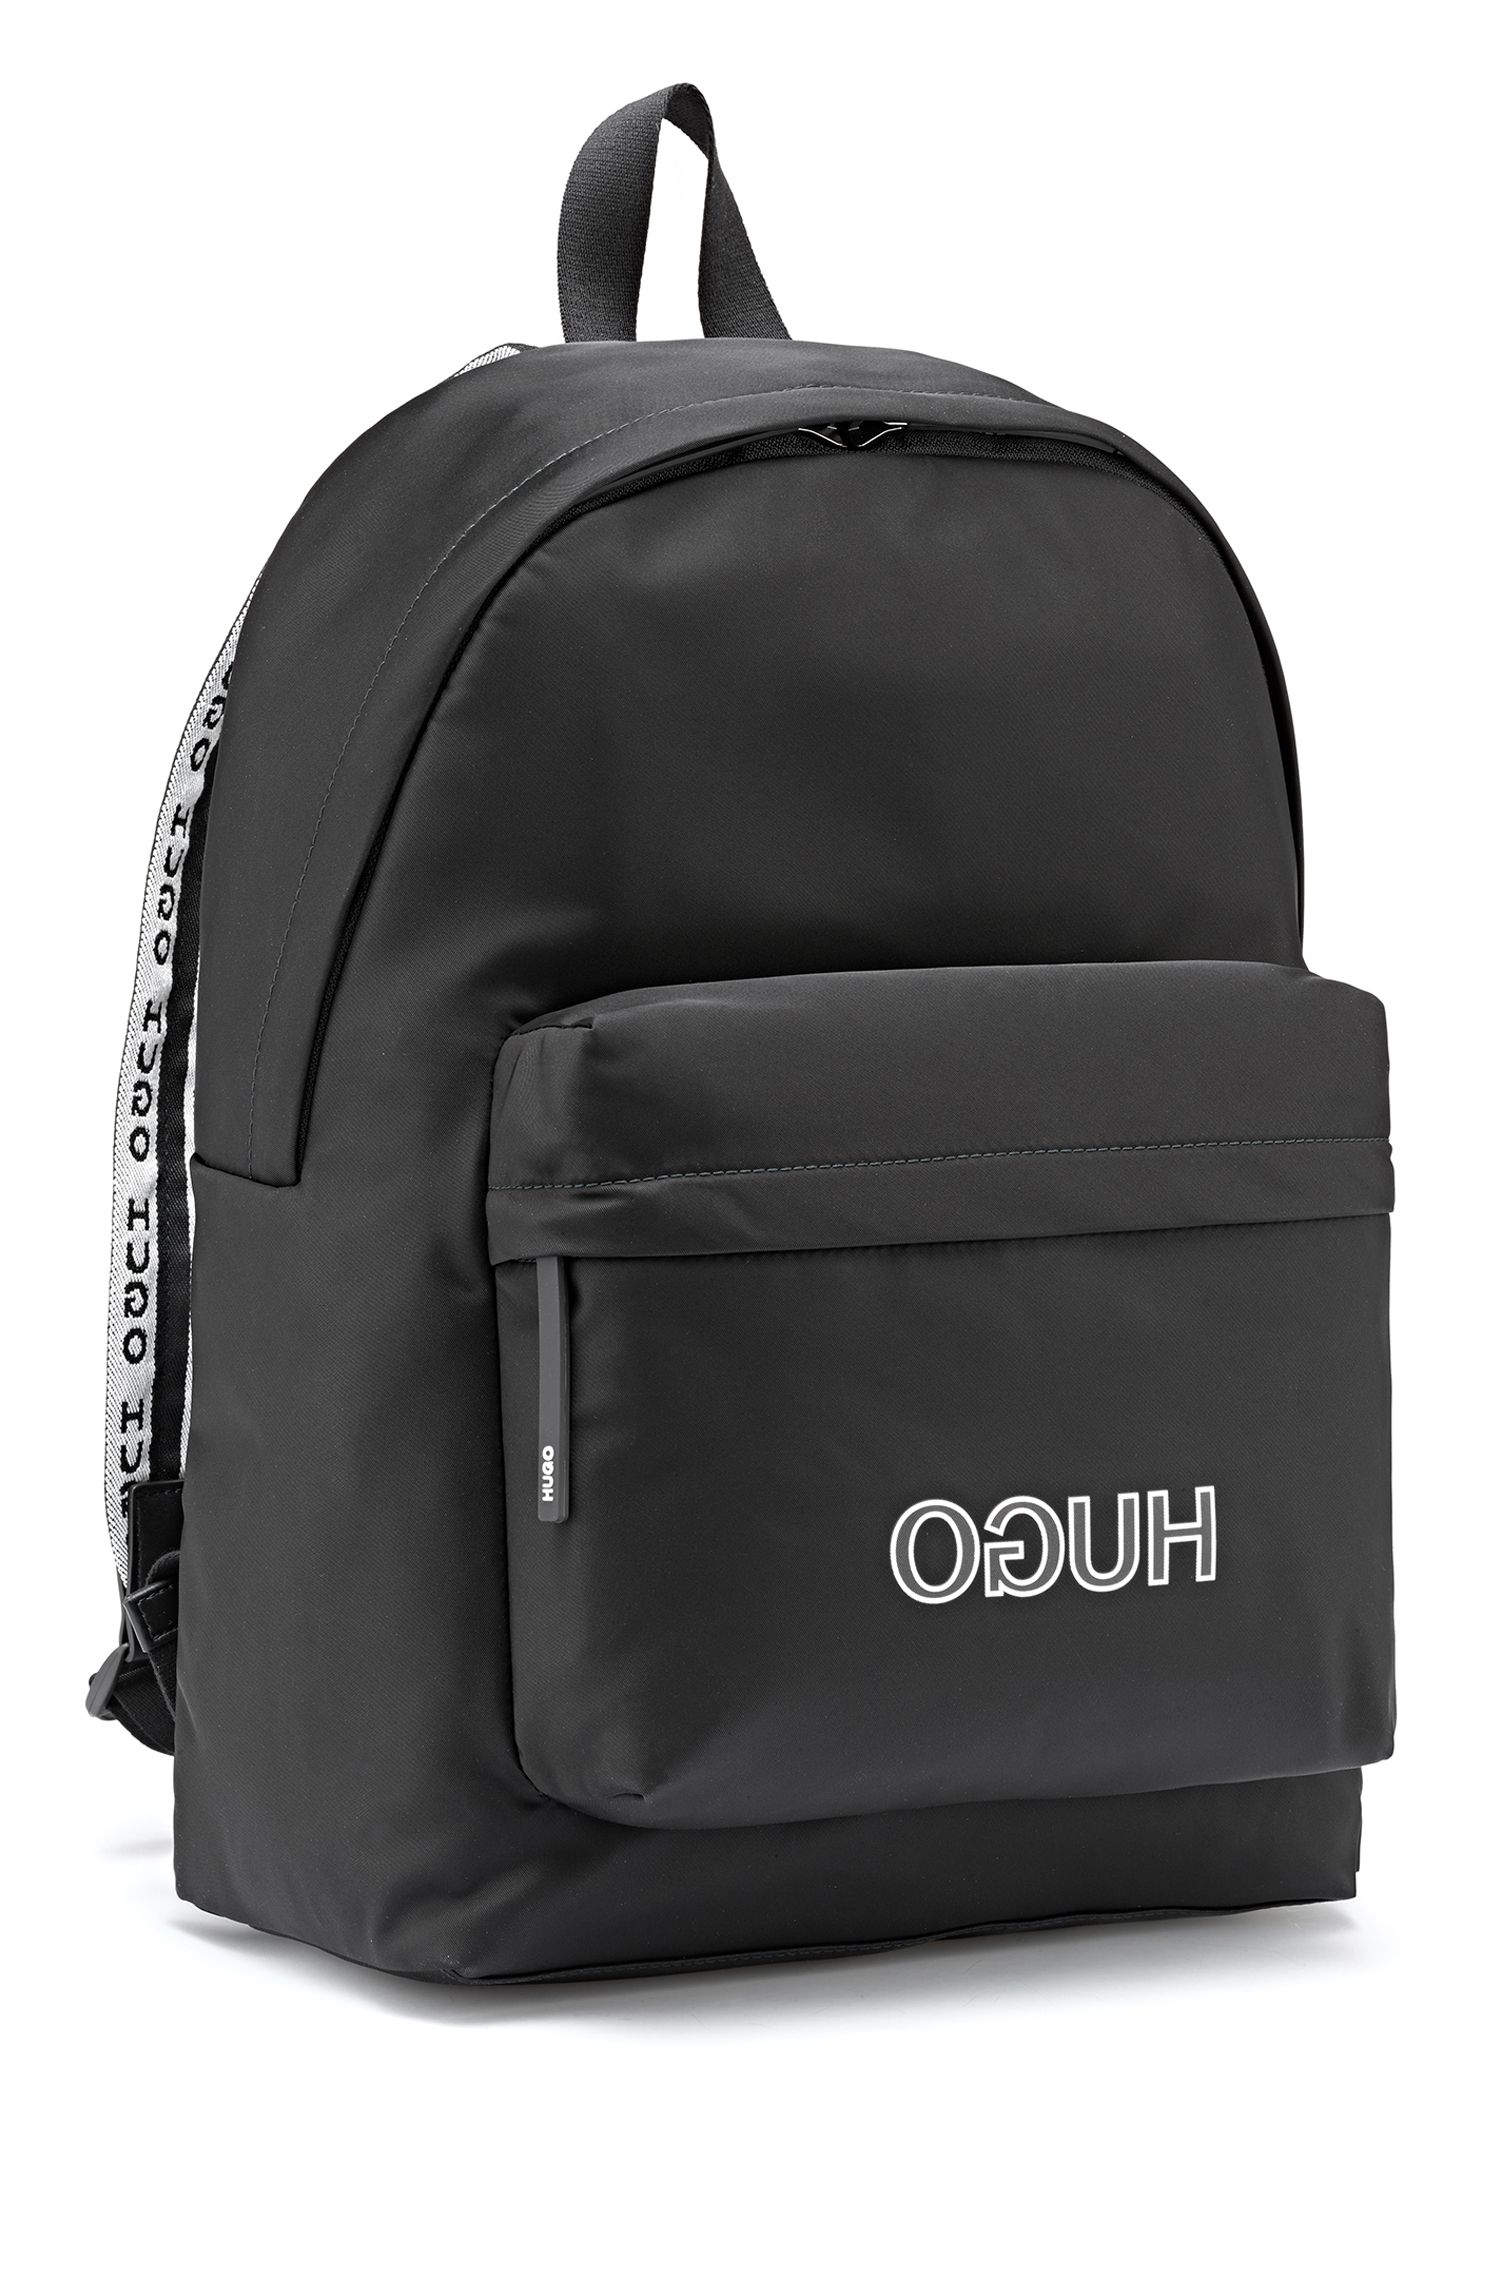 Logo-strap backpack in nylon gabardine, Black